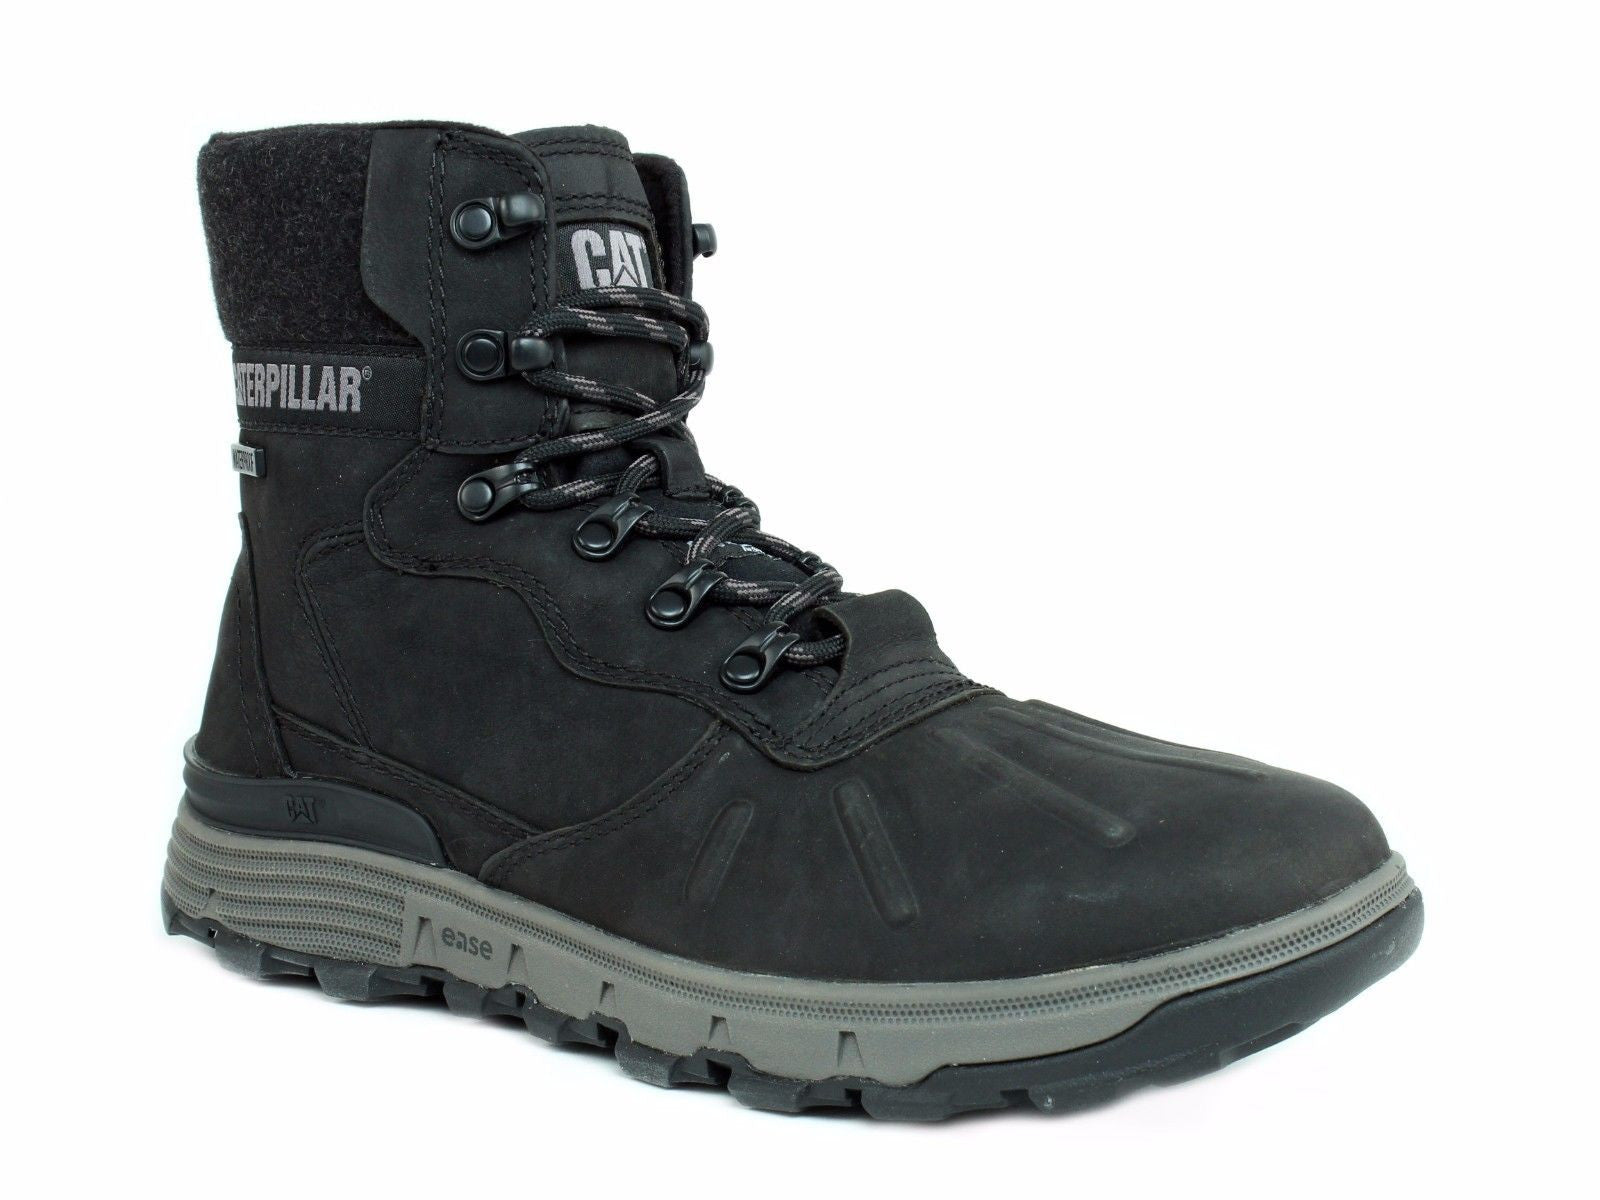 Caterpillar Men's STICTION HI ICE+W Waterproof Insulated Boots